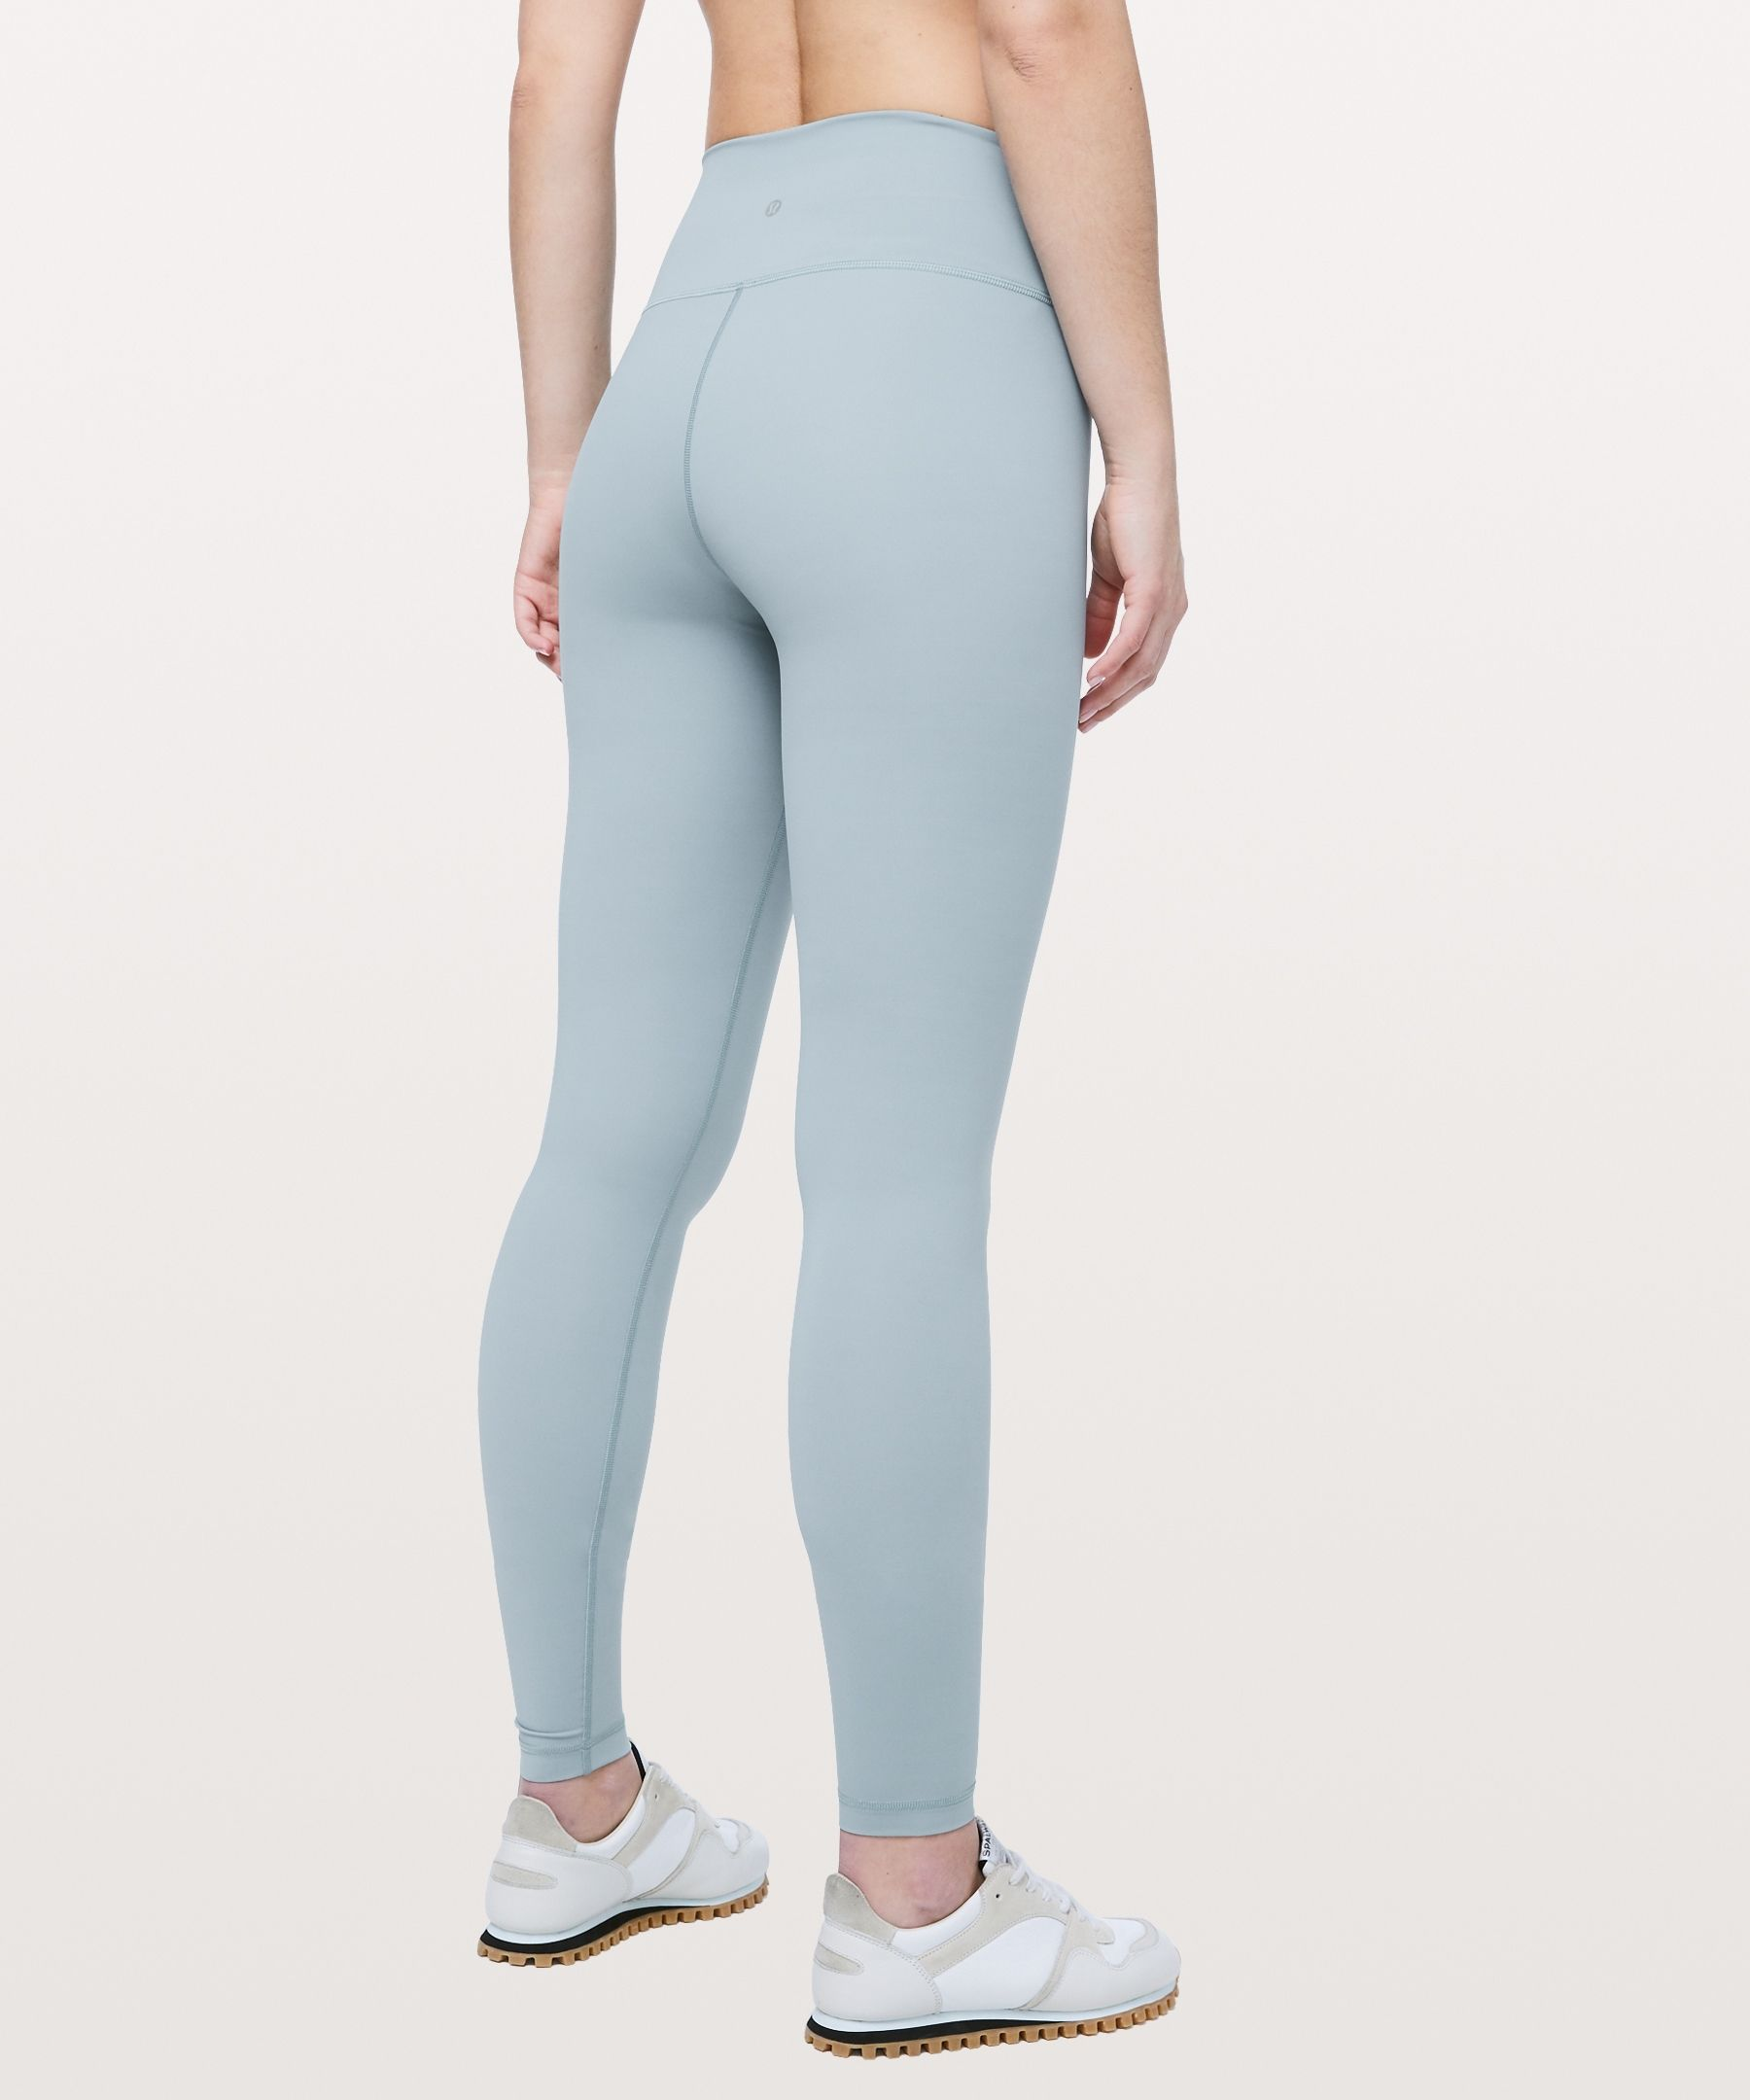 Lululemon Women S Wunder Under High Rise Legging 31 Full On Luxtreme Blue Cast Size 12 Lululemon Outfits Womens Printed Leggings Pants For Women